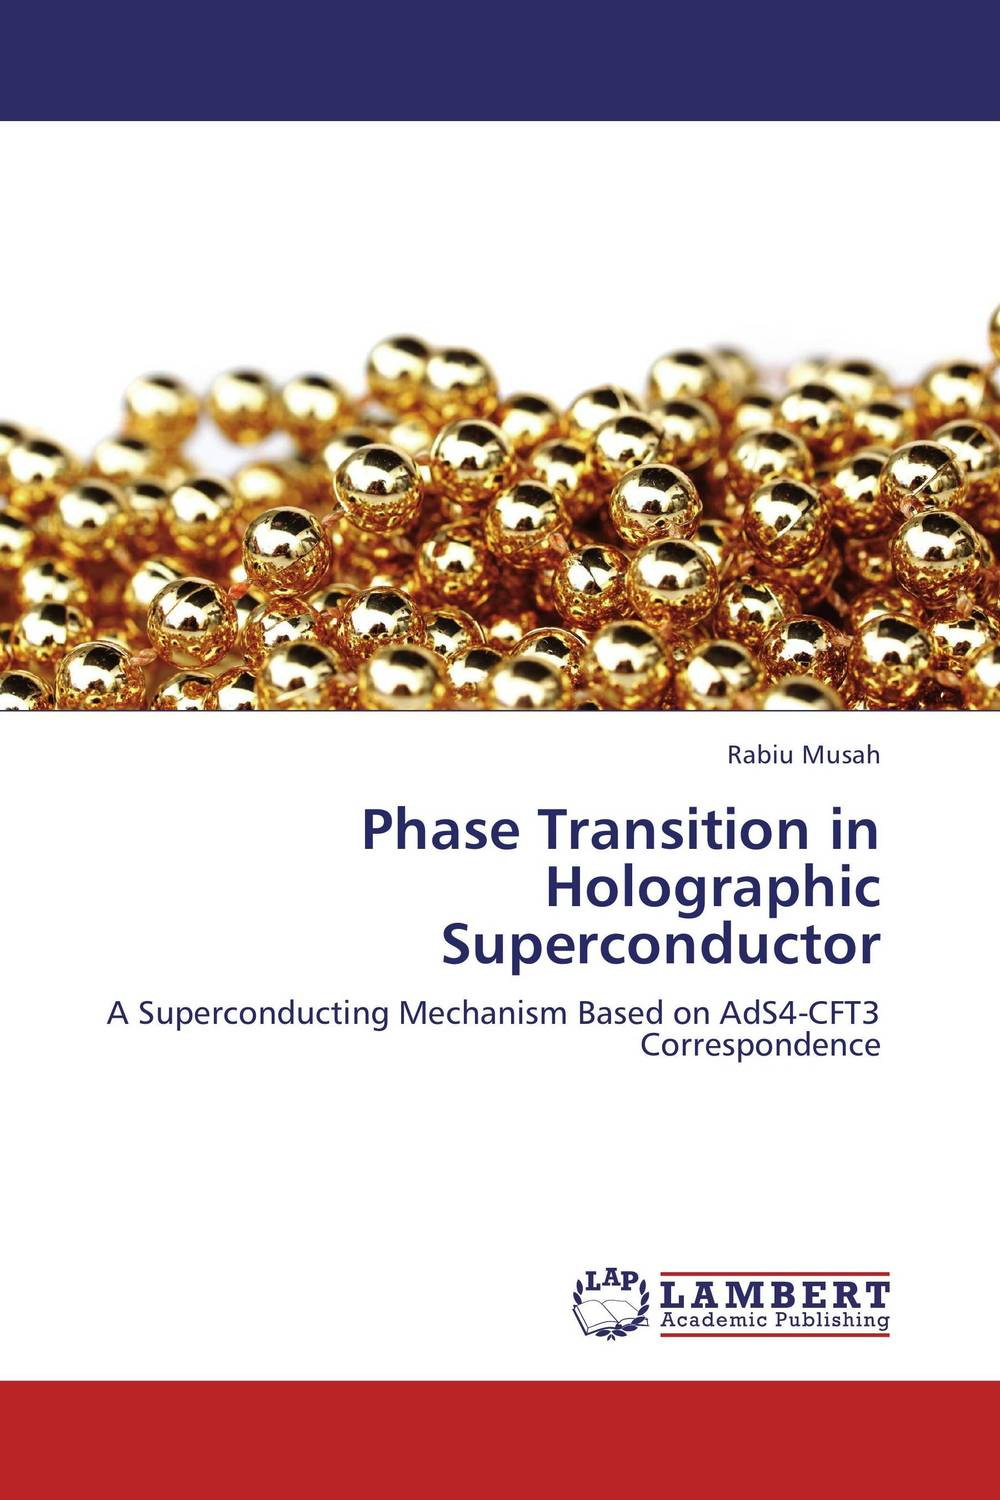 Phase Transition in Holographic Superconductor